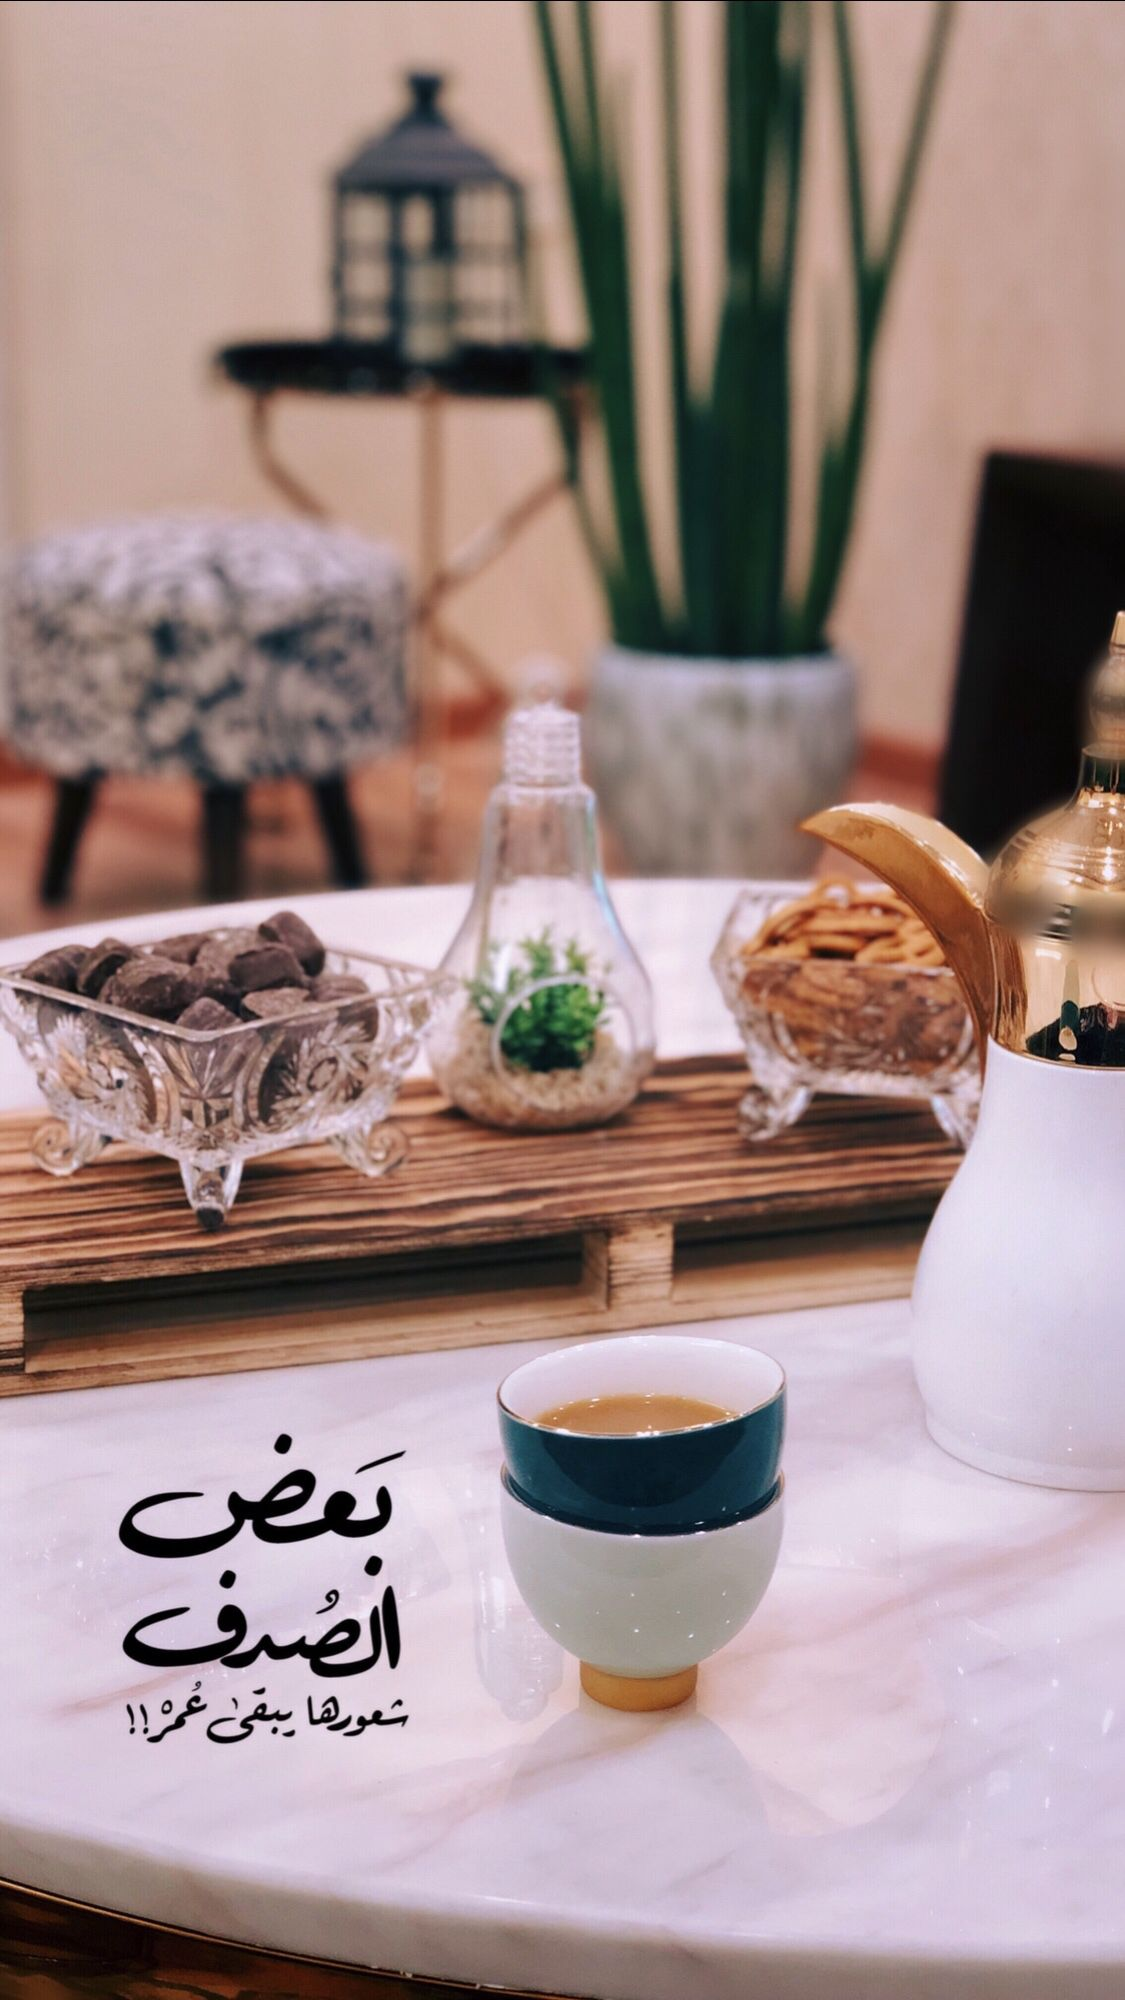 Pin By Insaf On كلام In 2020 Coffee And Books Arabian Decor Eid Gifts